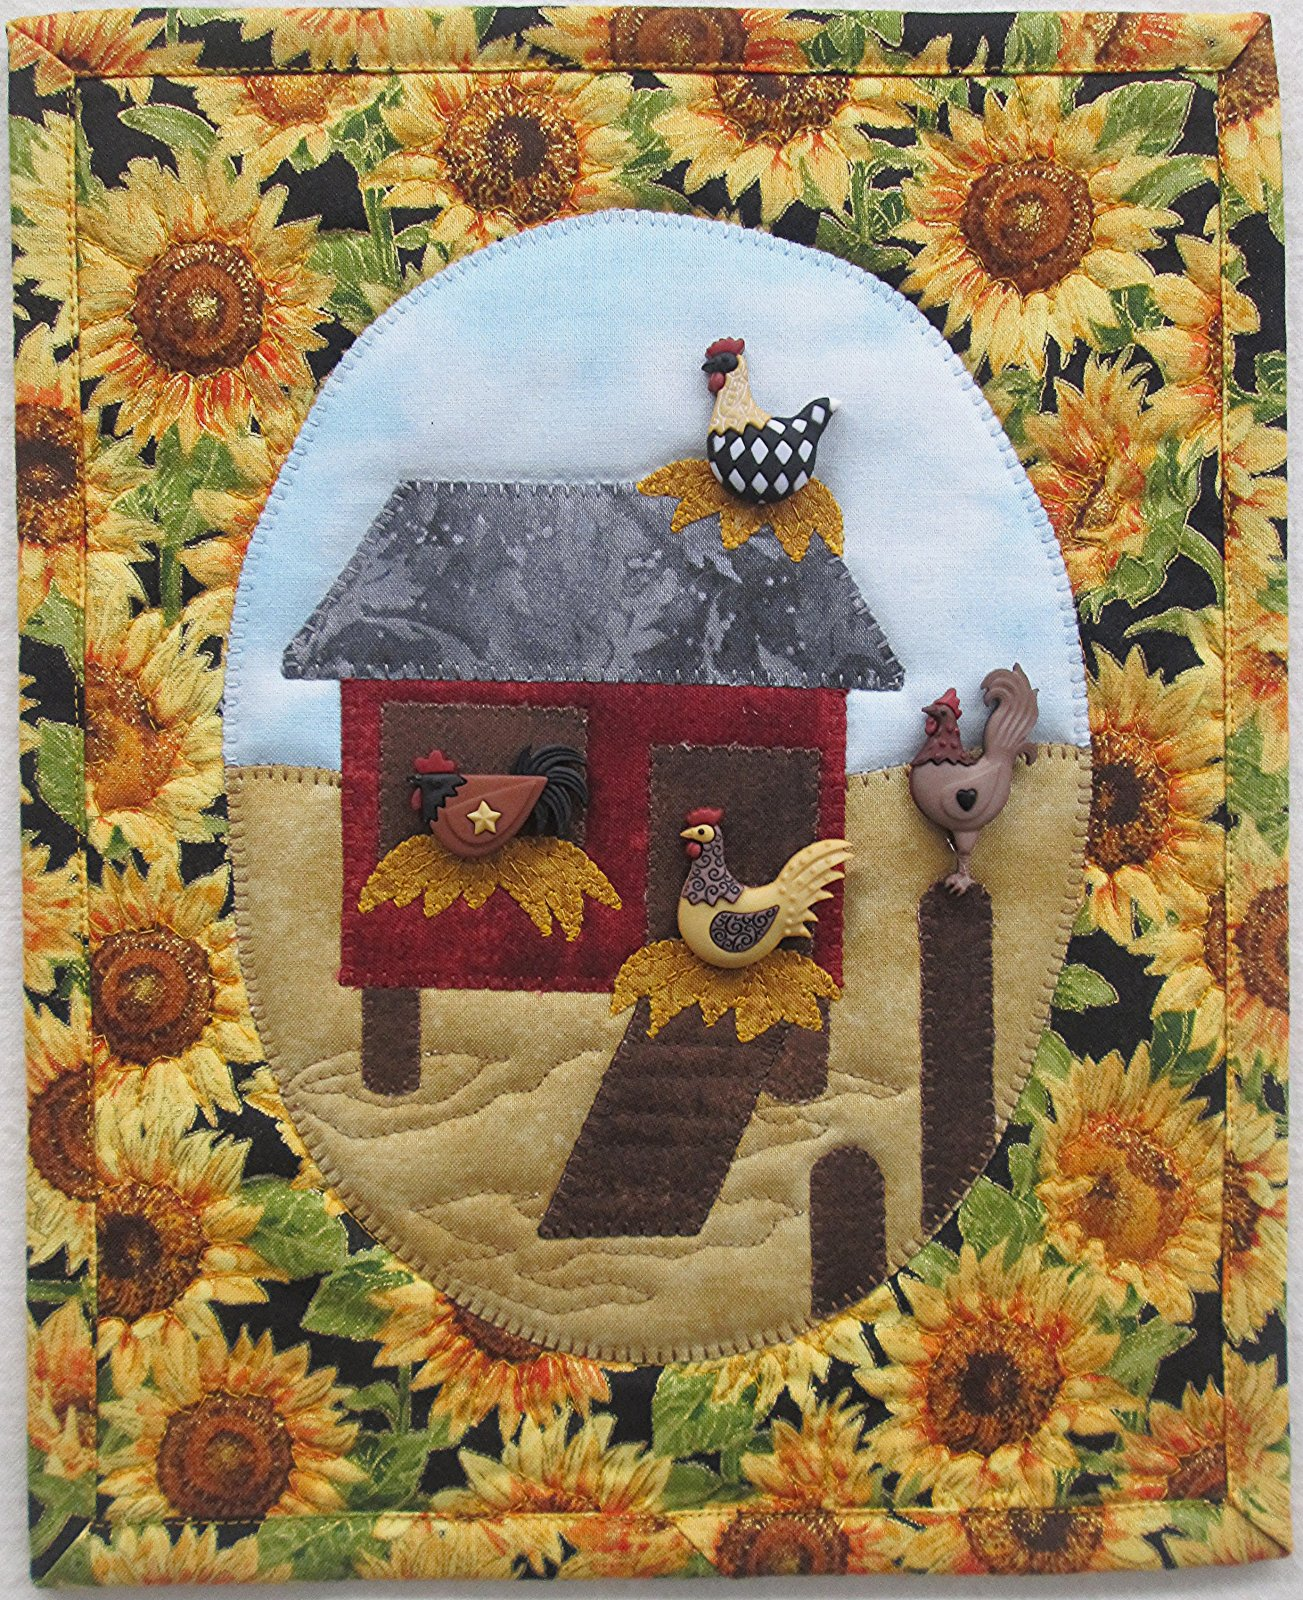 Hen House Duty Wall Hanging Kit 9 x 11